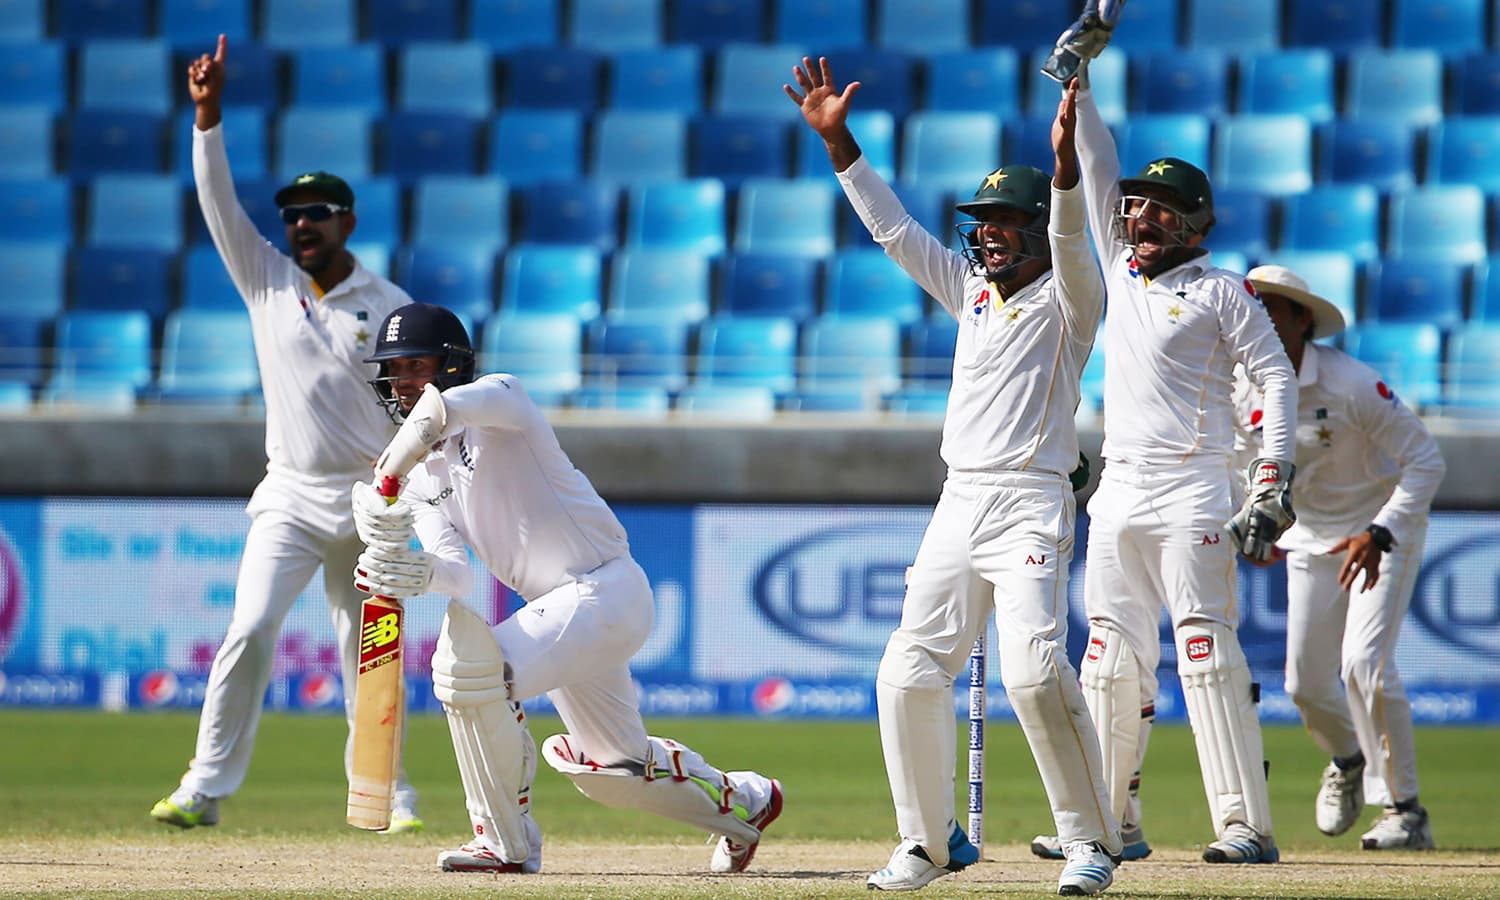 Pakistan players appeal for a wicket. — AFP